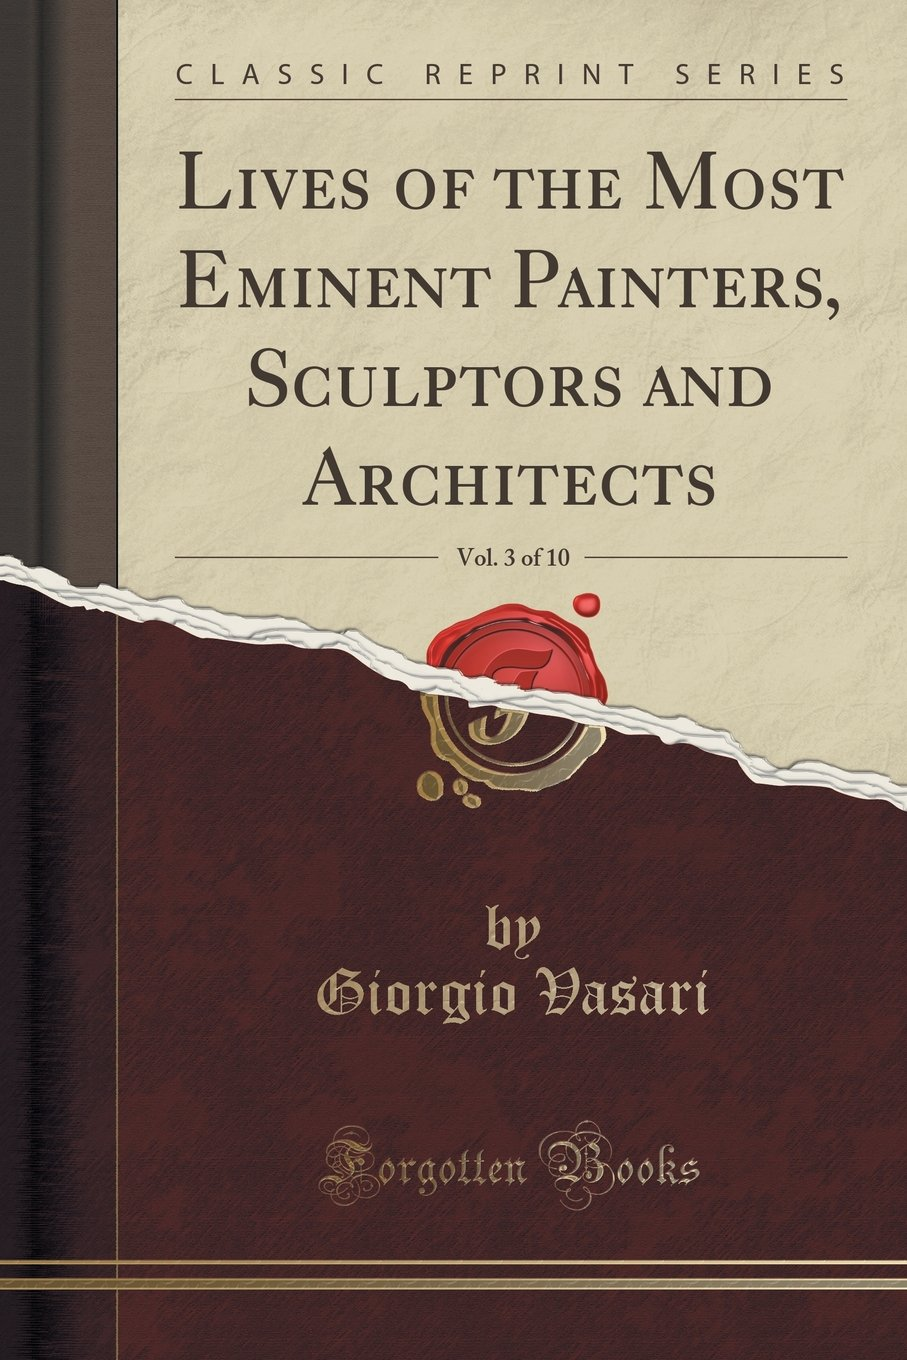 Lives of the Most Eminent Painters, Sculptors and Architects, Vol. 3 of 10 (Classic Reprint)